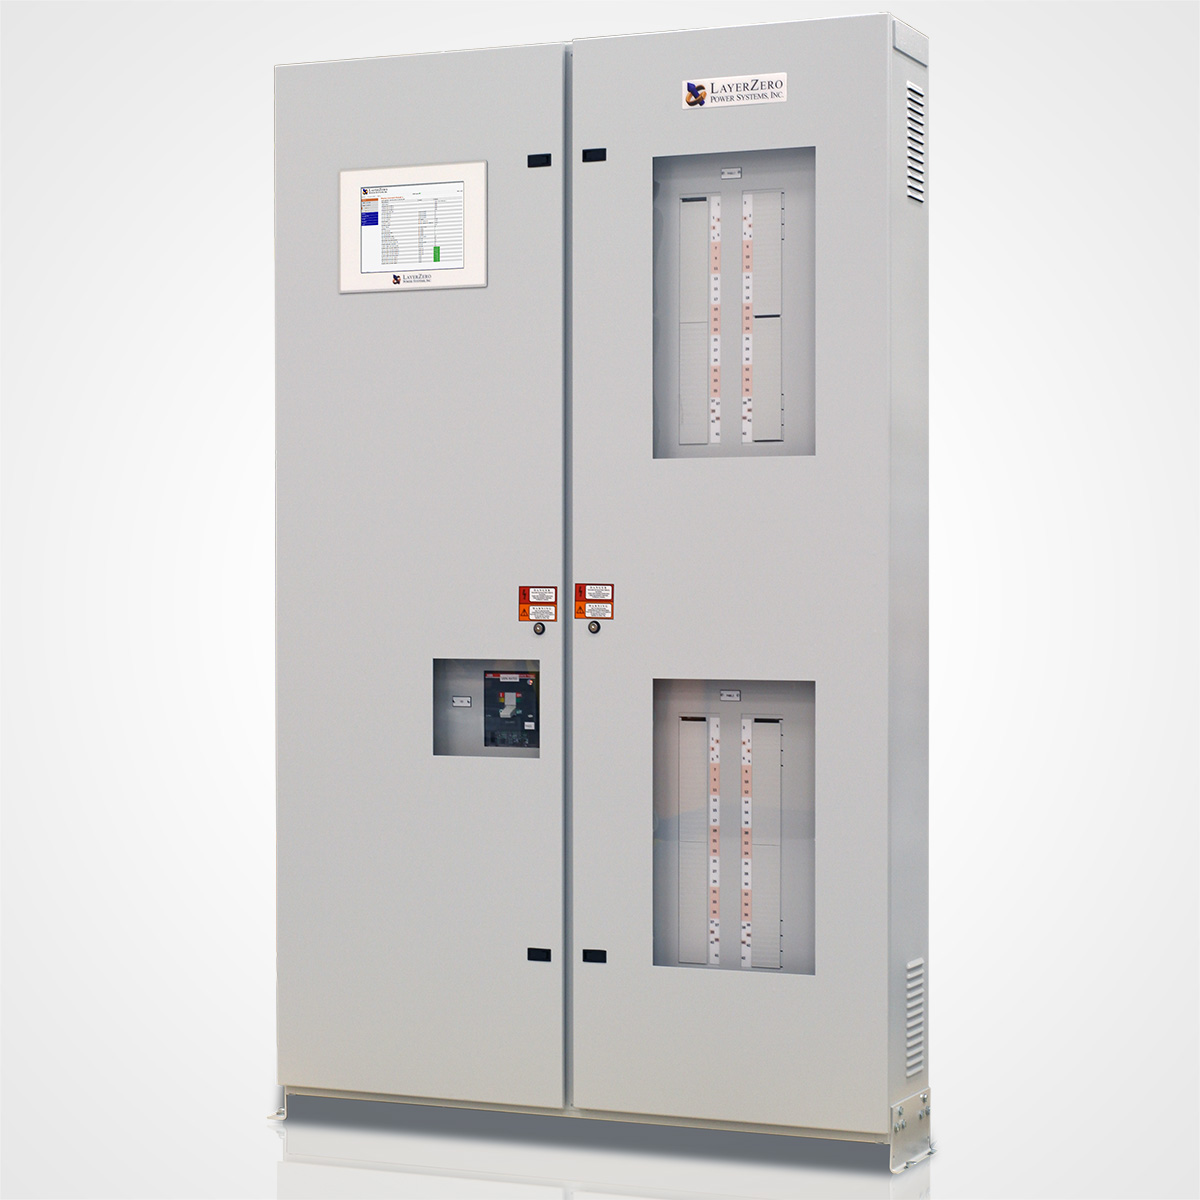 The LayerZero Series 70: ePanel-2 Front Angle with a Single Main Circuit Breaker.